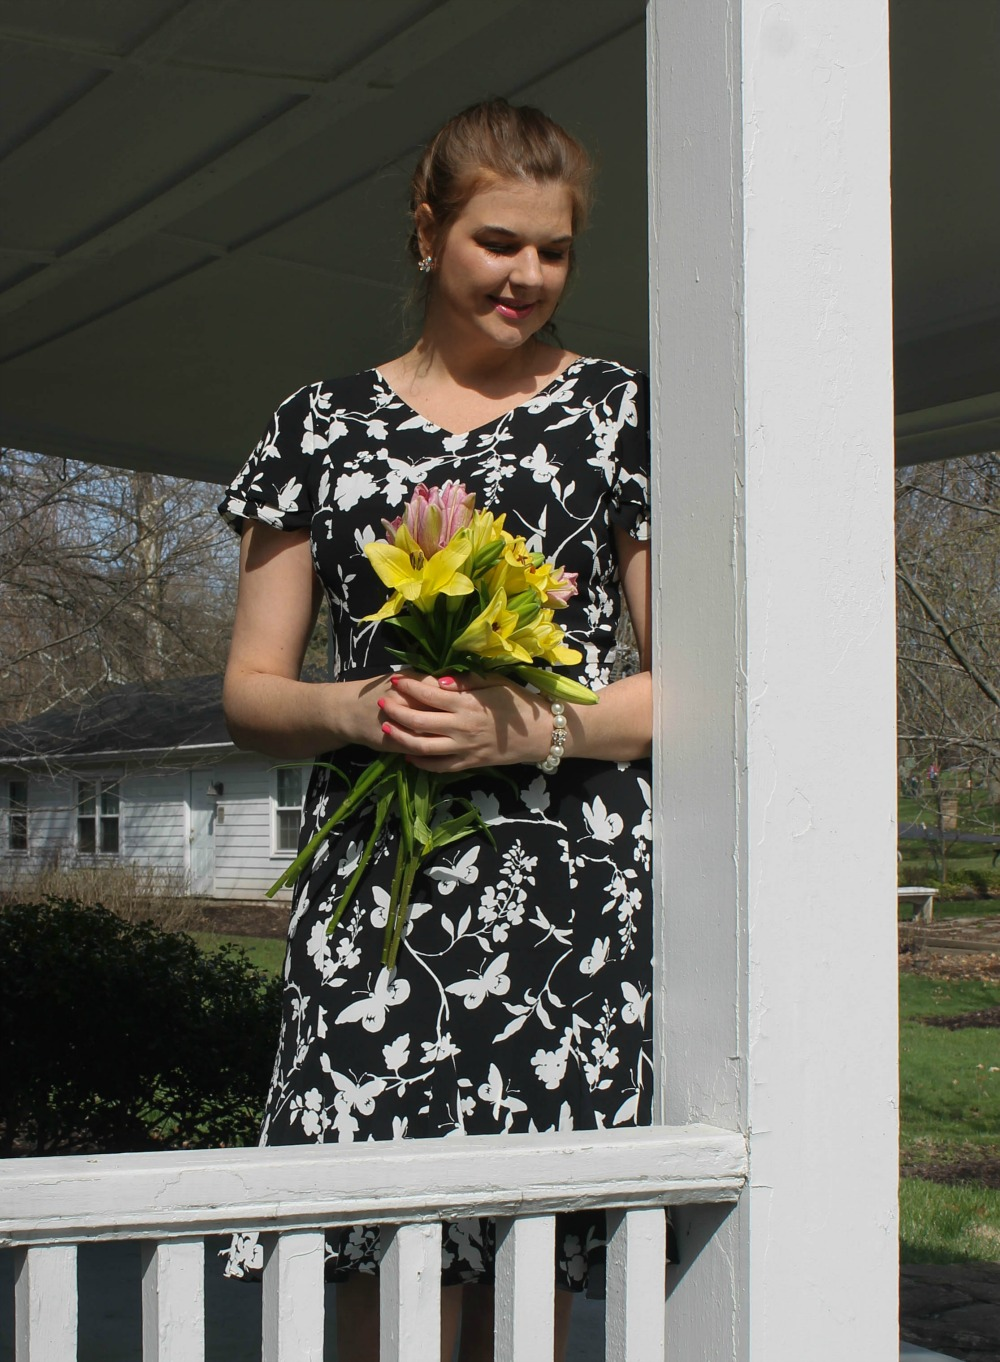 Talbots Occasion Wear I Spring 2018 RSVP Collection Butterfly Print Dress and Flats #Talbots #SpringStyle #OccasionTalbots Occasion Wear I Spring 2018 RSVP Collection Butterfly Print Dress and Flats #Talbots #SpringStyle #Occasion